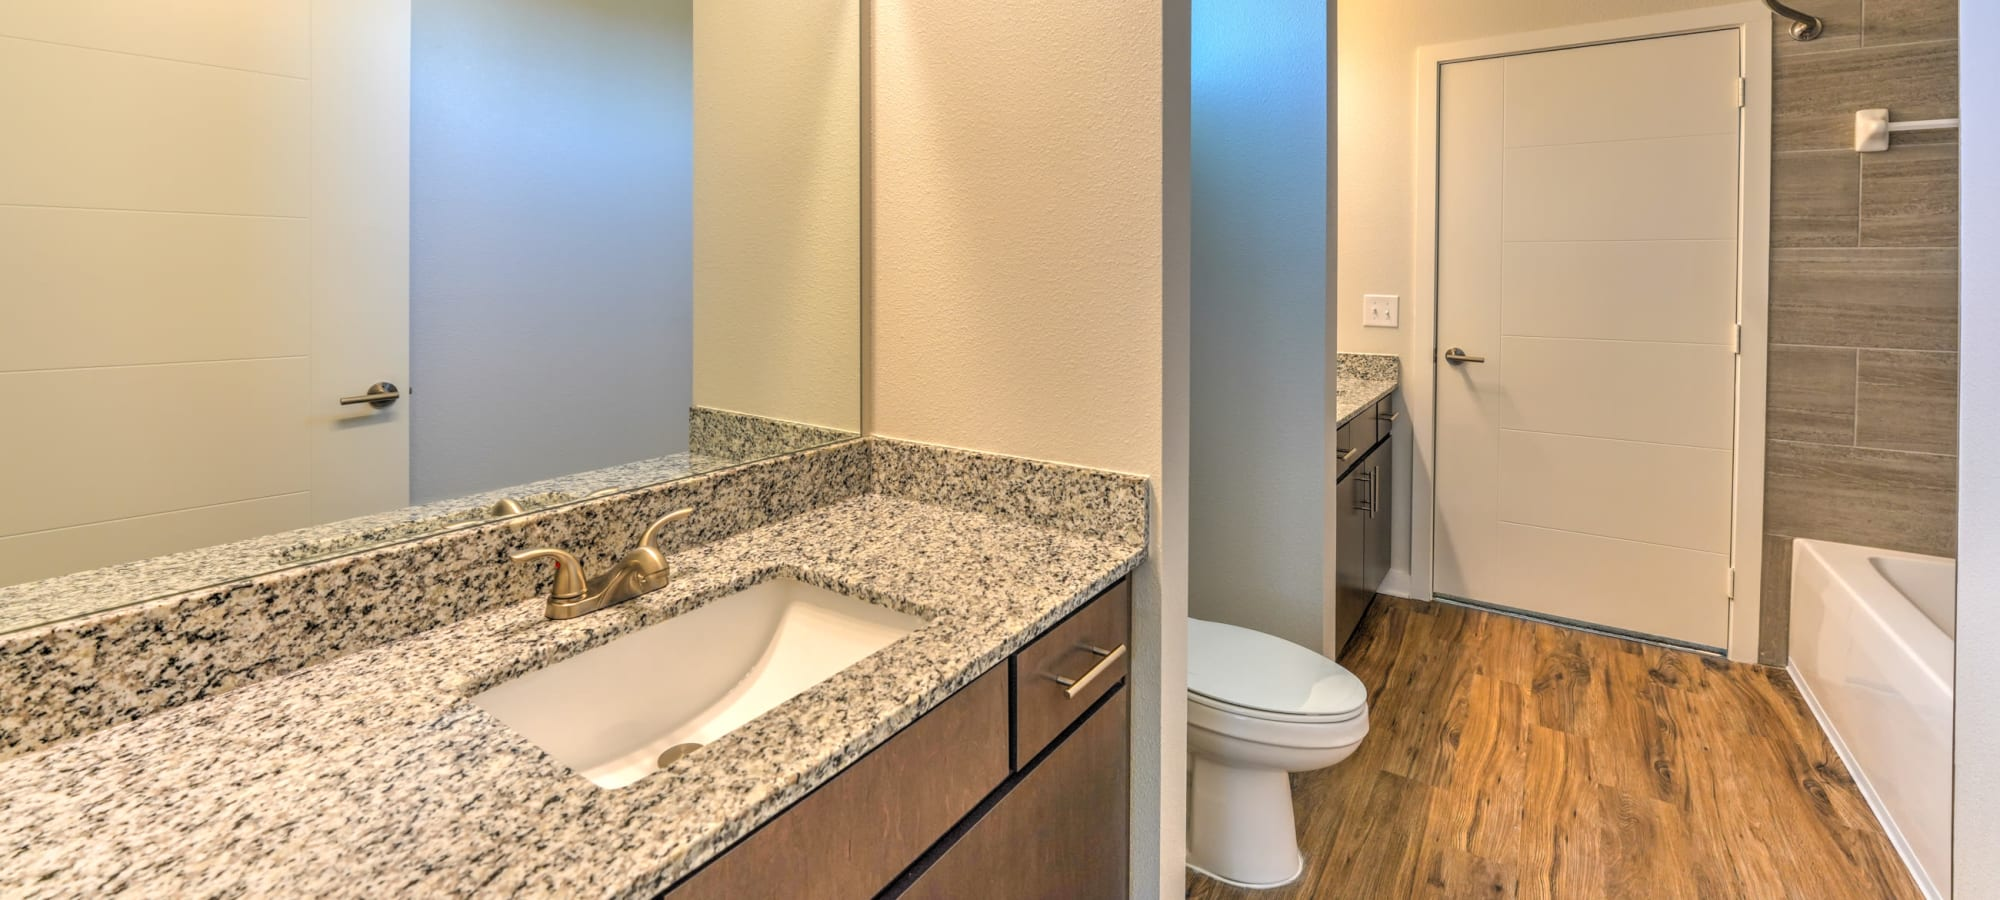 Amenities at Fusion in Jacksonville, Florida